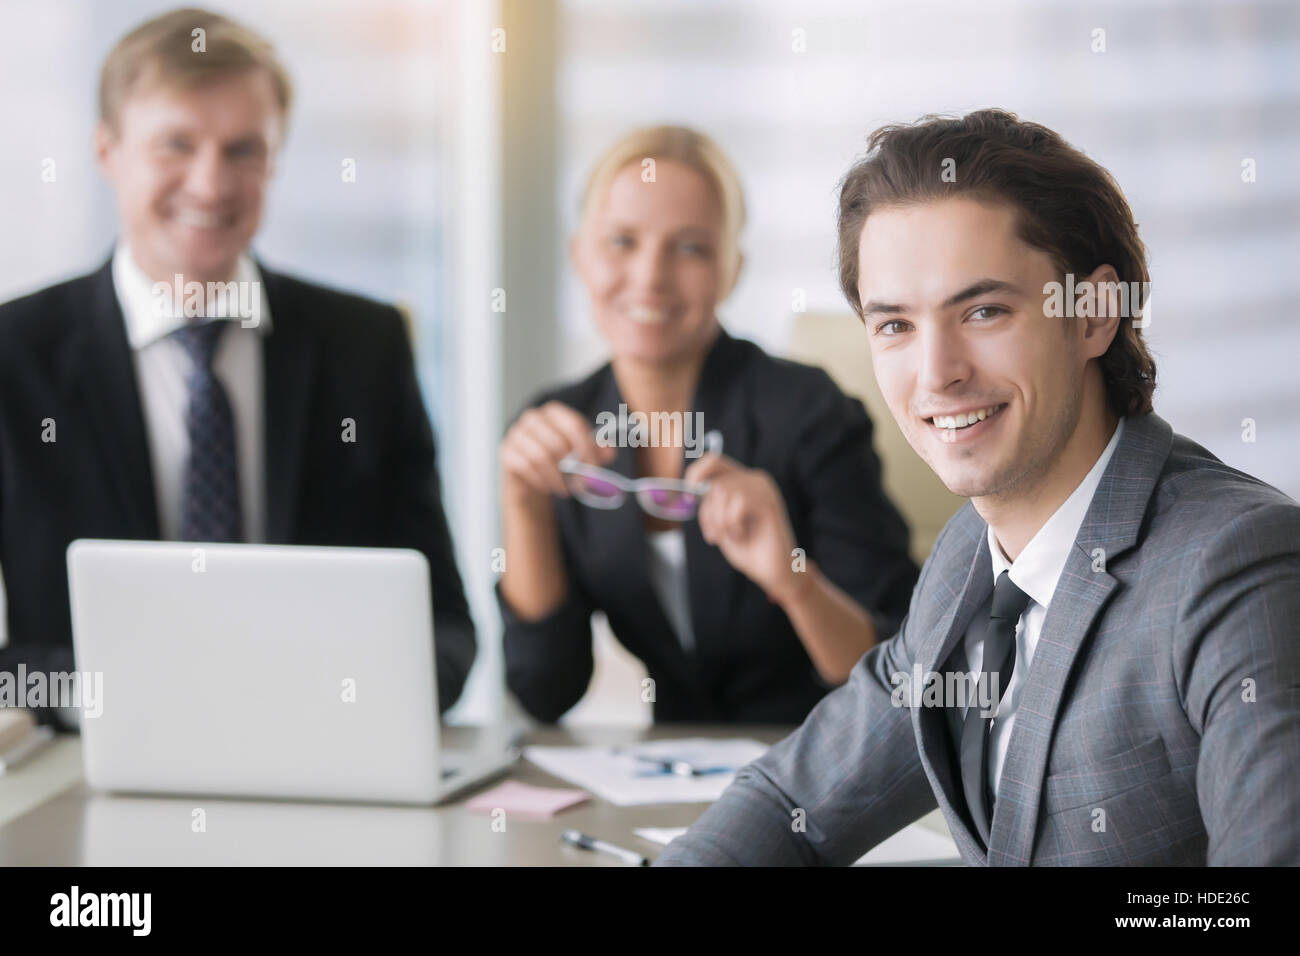 Group of business people and a smiling young man Stock Photo